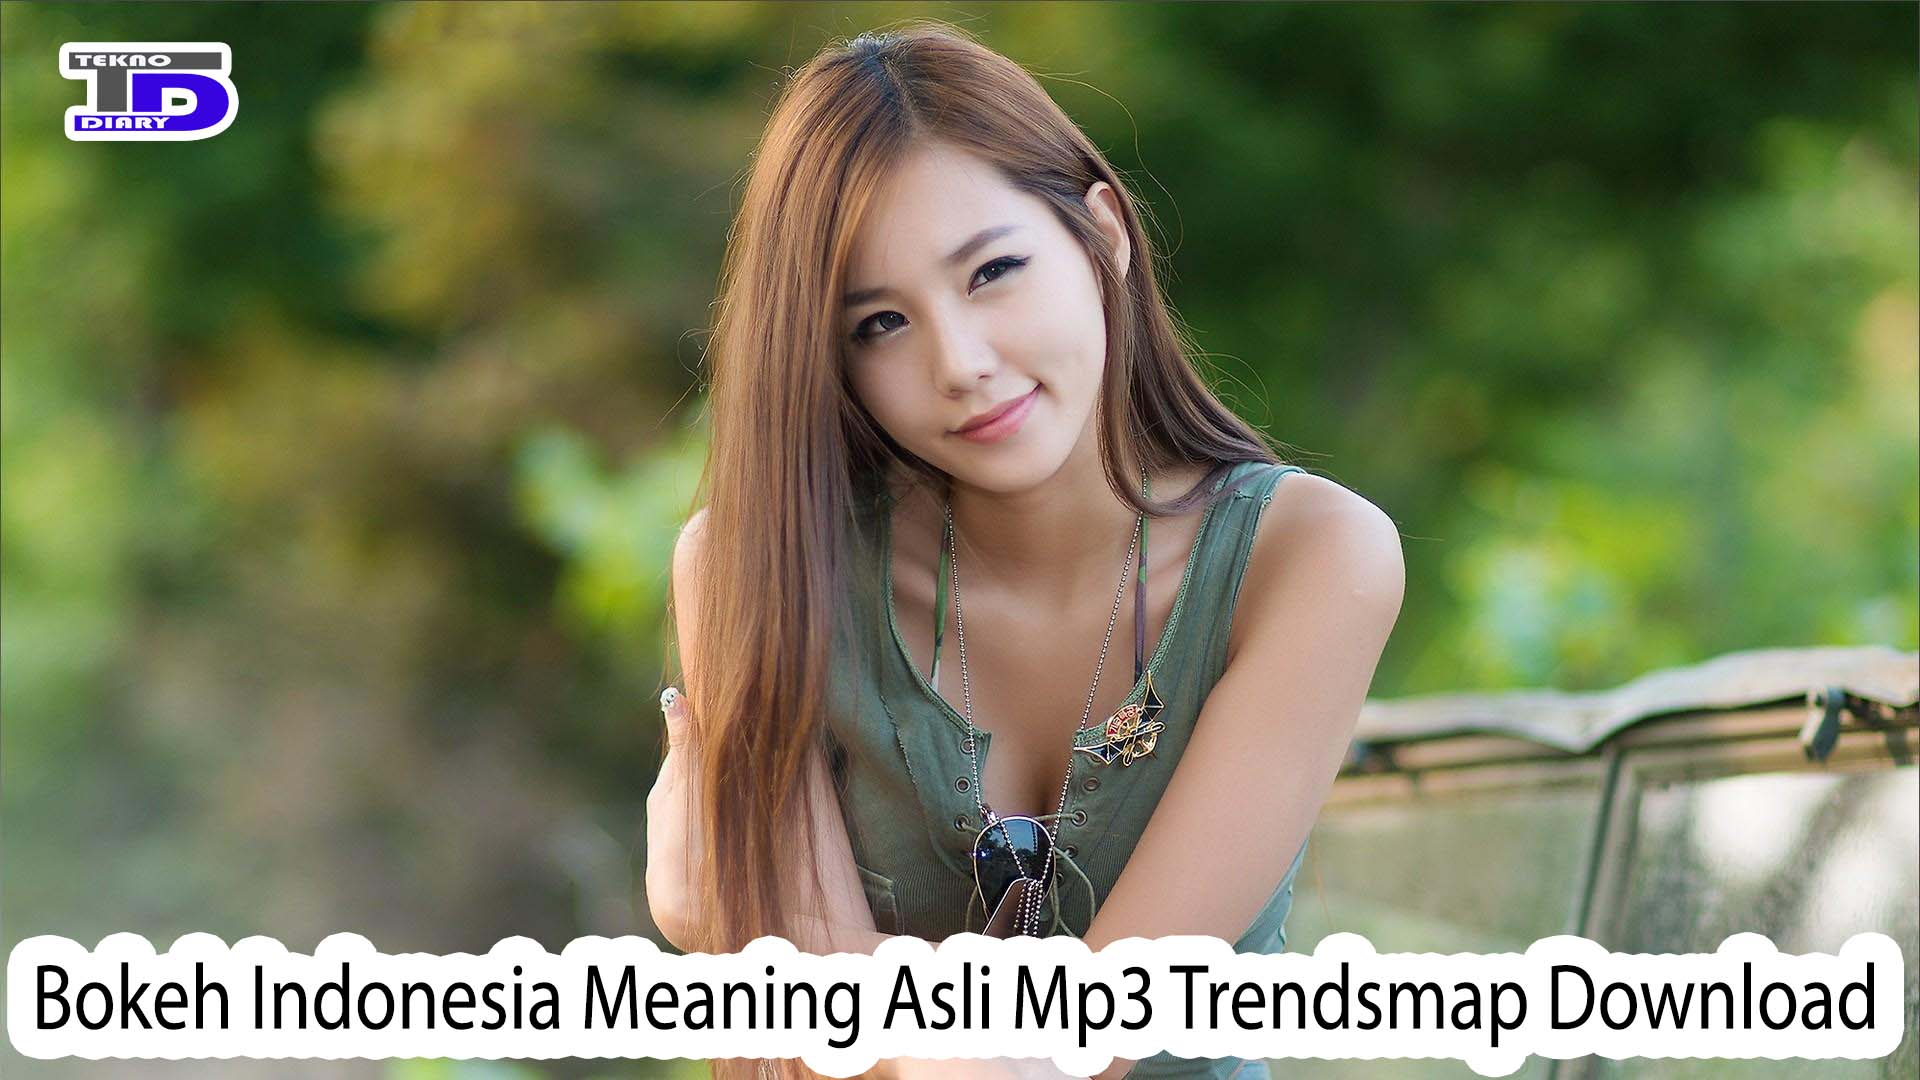 Bokeh Indonesia Meaning Asli Mp3 Trendsmap Download